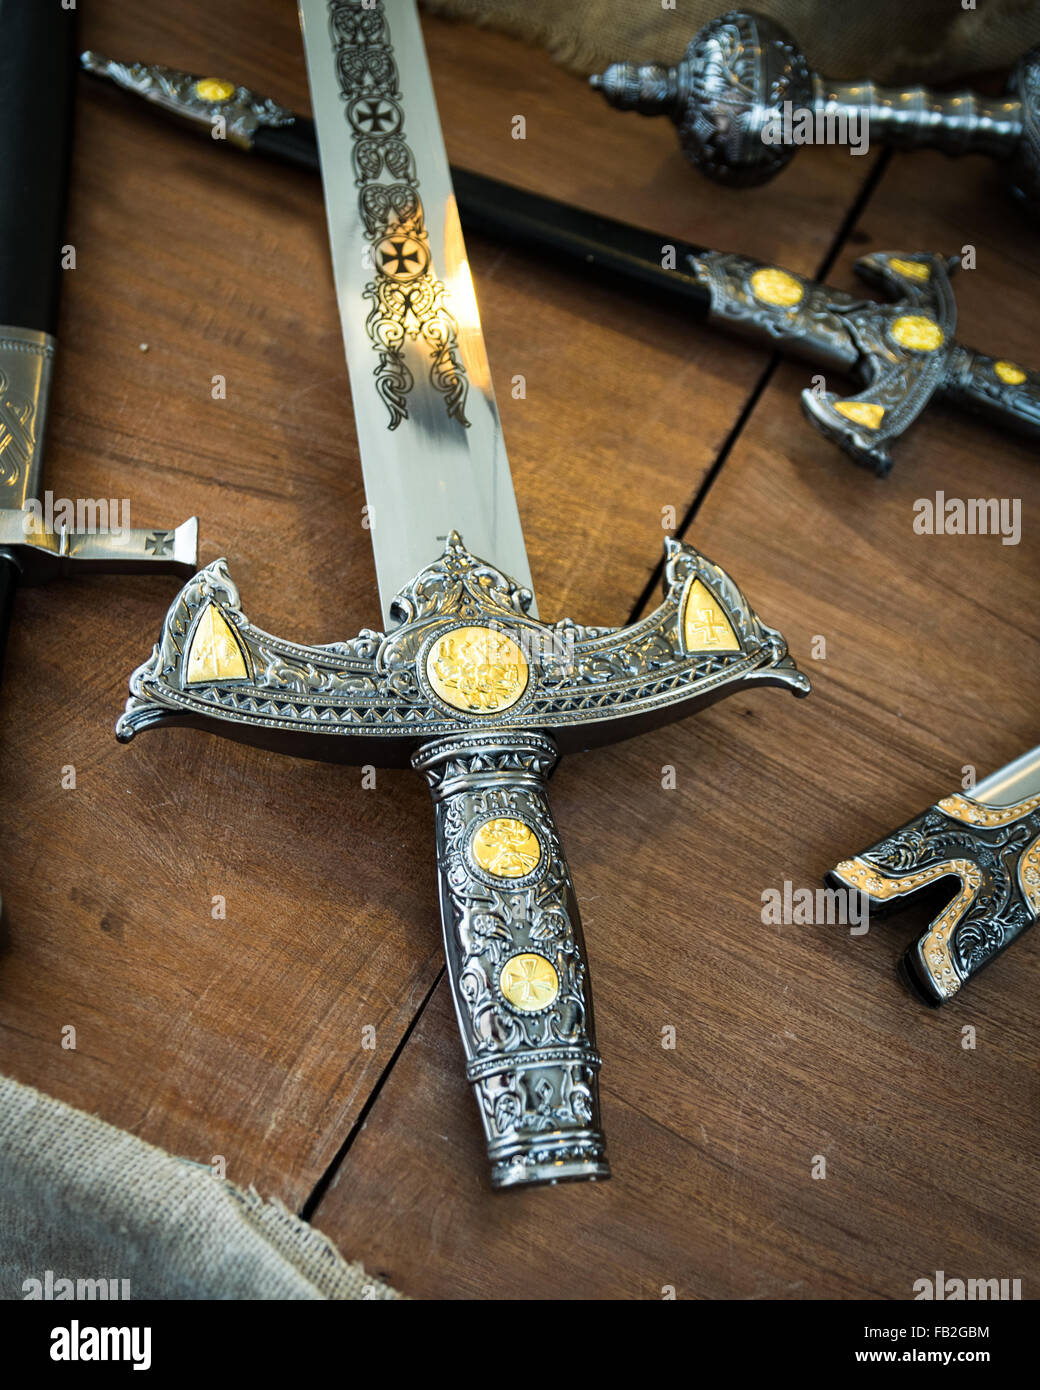 Detail of the hilt of a sword that dates from the time of the Crusaders. - Stock Image